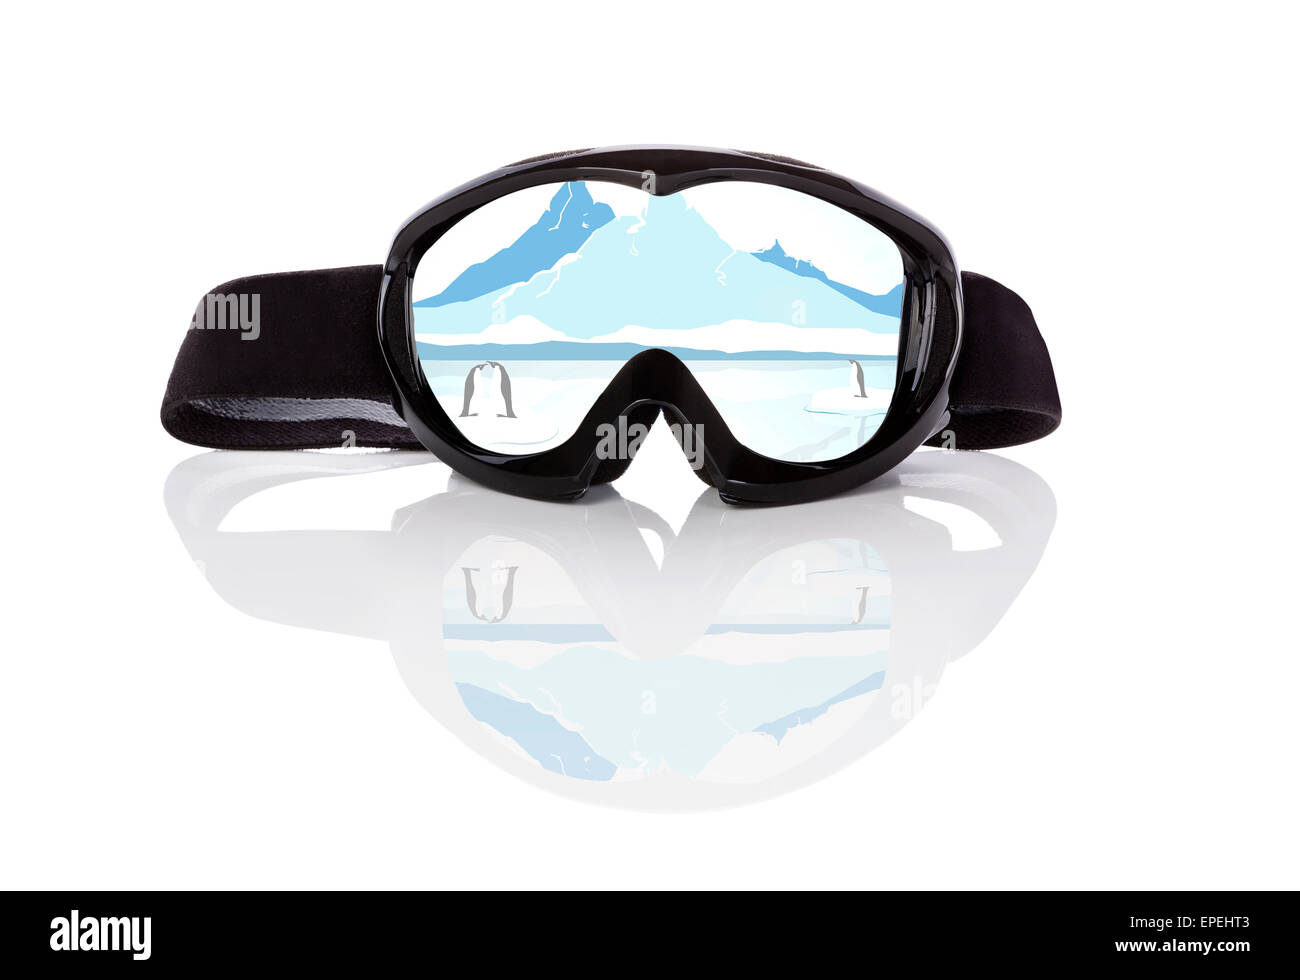 Winter sports season. Ski goggles with beautiful winter arctic landscape reflection isolated on white background. - Stock Image